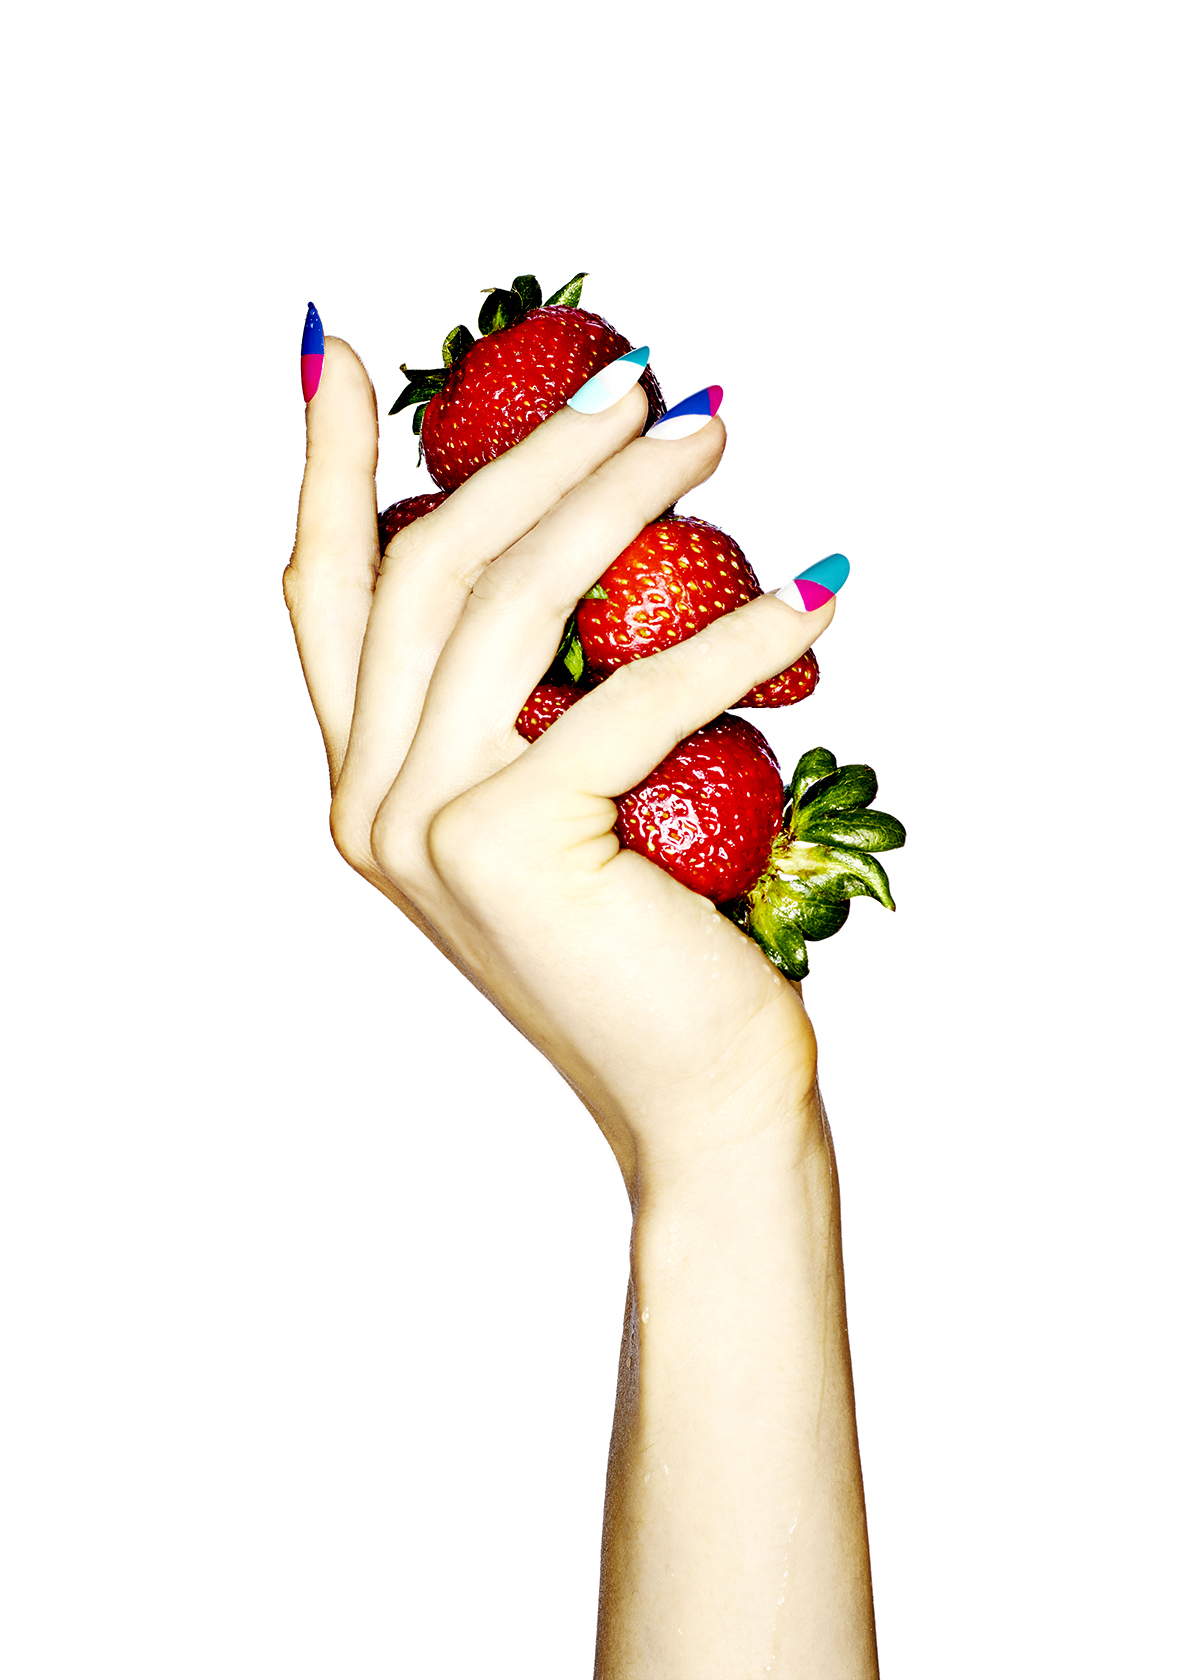 STRAWBERRY_GOOD